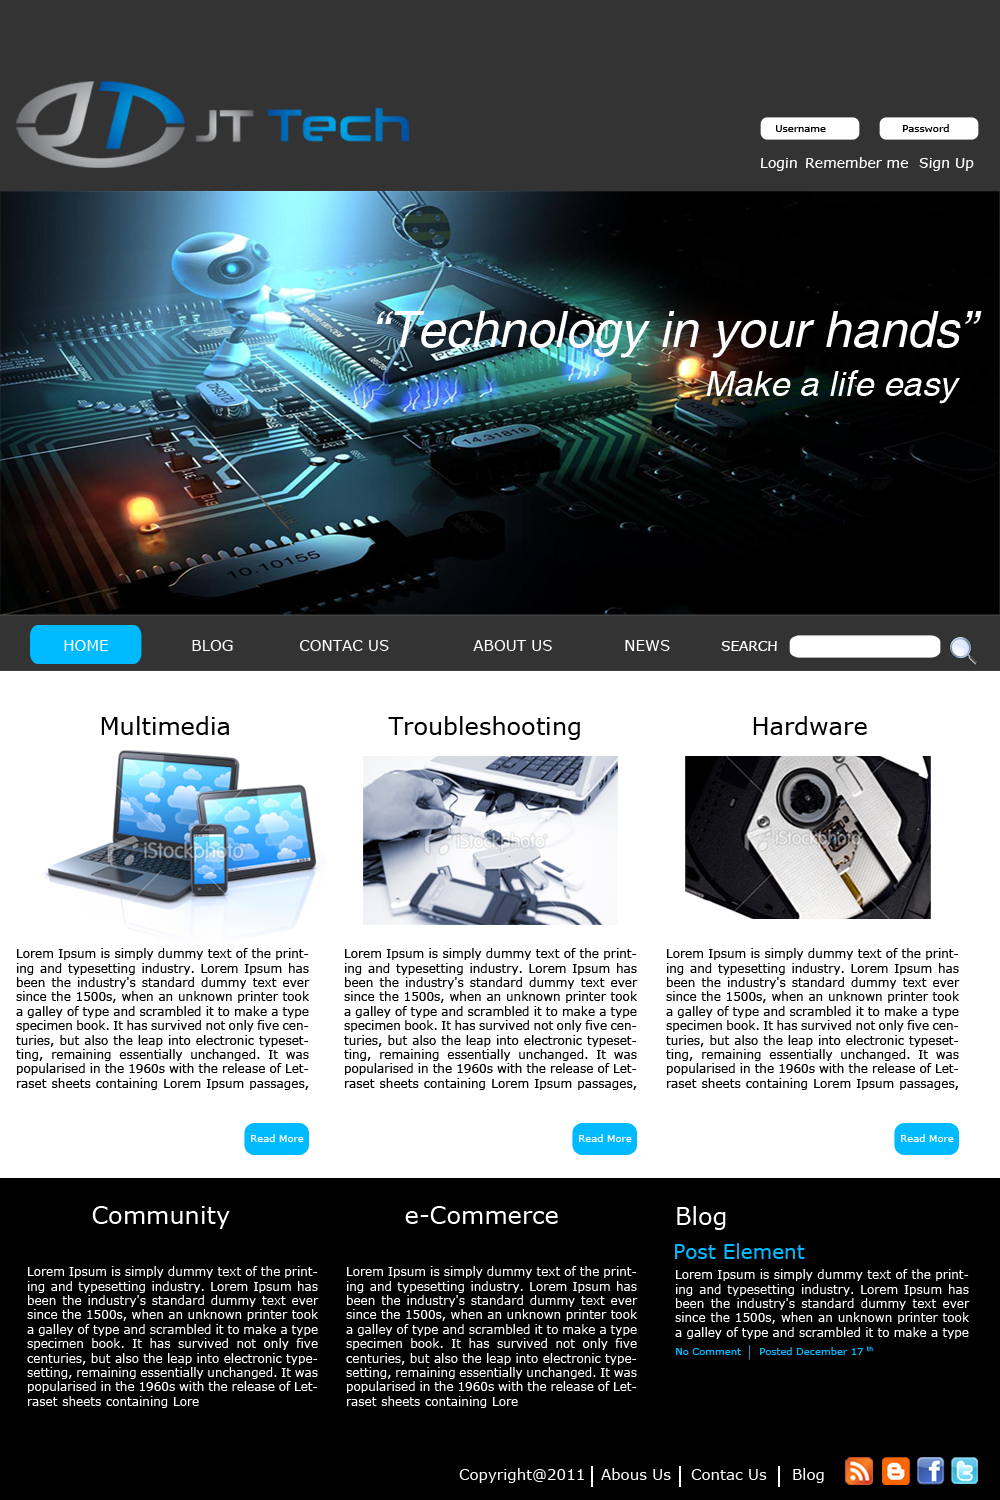 Professional, Serious, Computer Wordpress Design for a